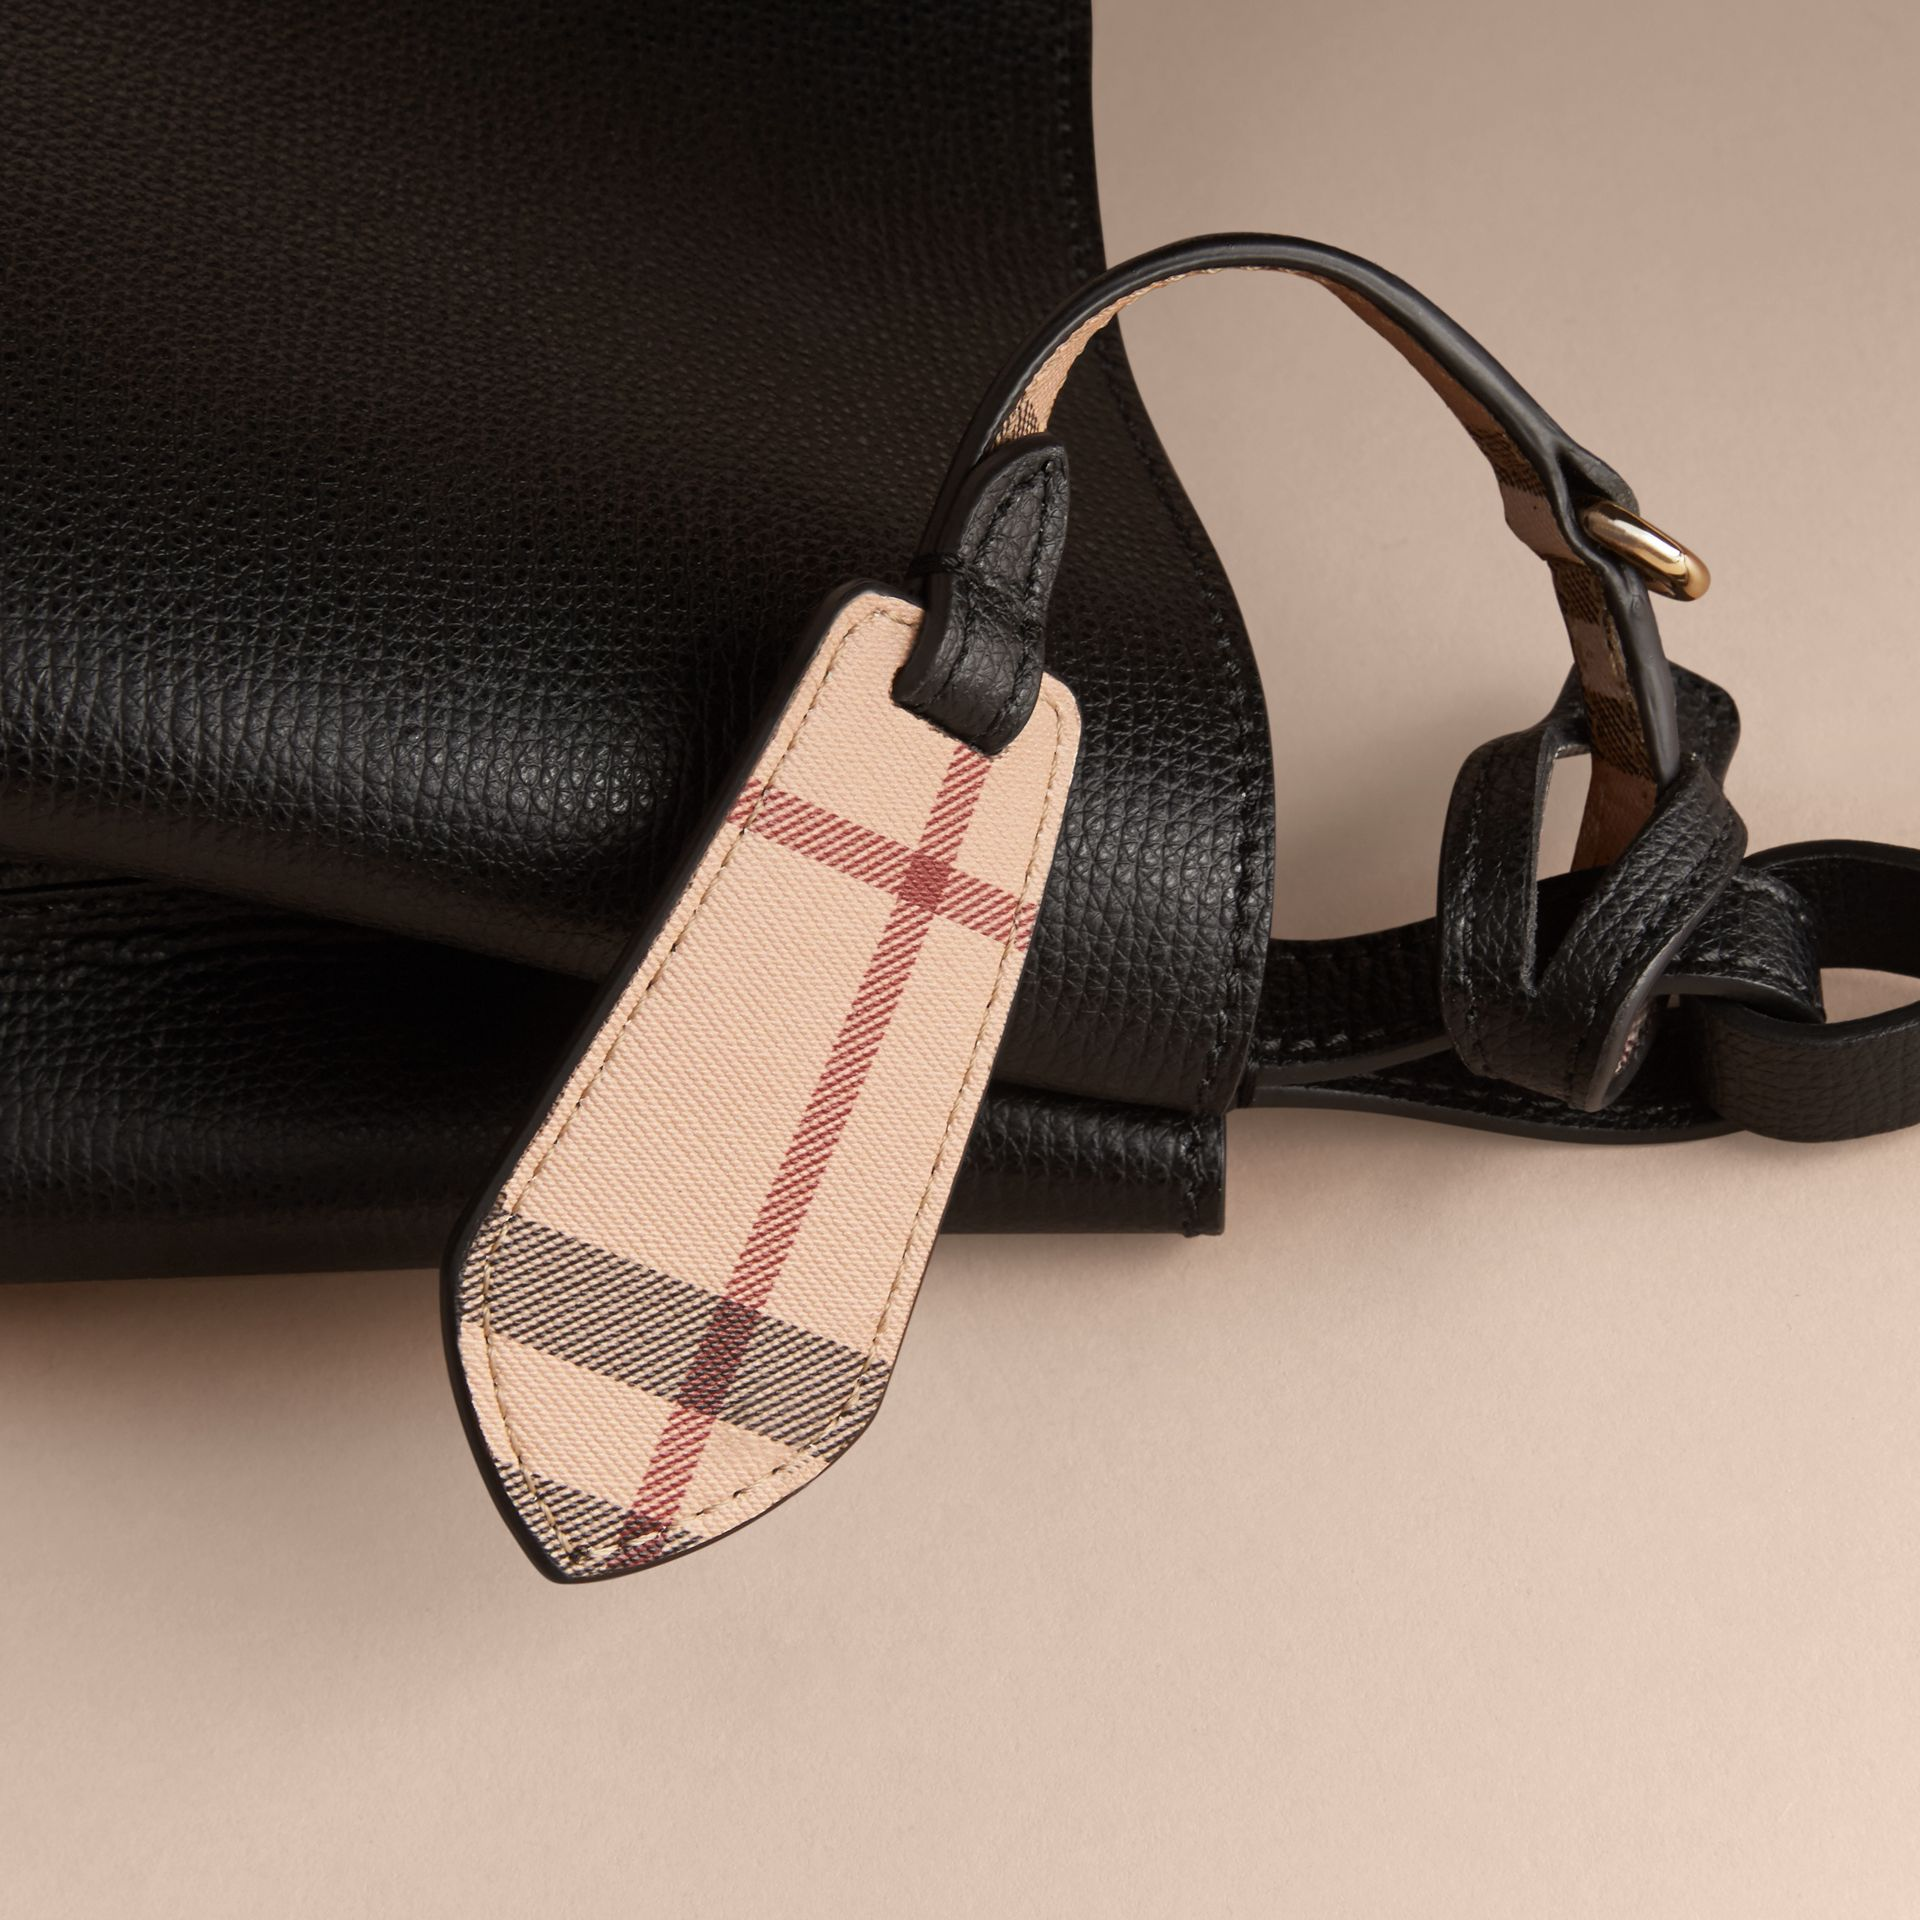 Leather and Haymarket Check Crossbody Bucket Bag in Black - Women | Burberry - gallery image 6